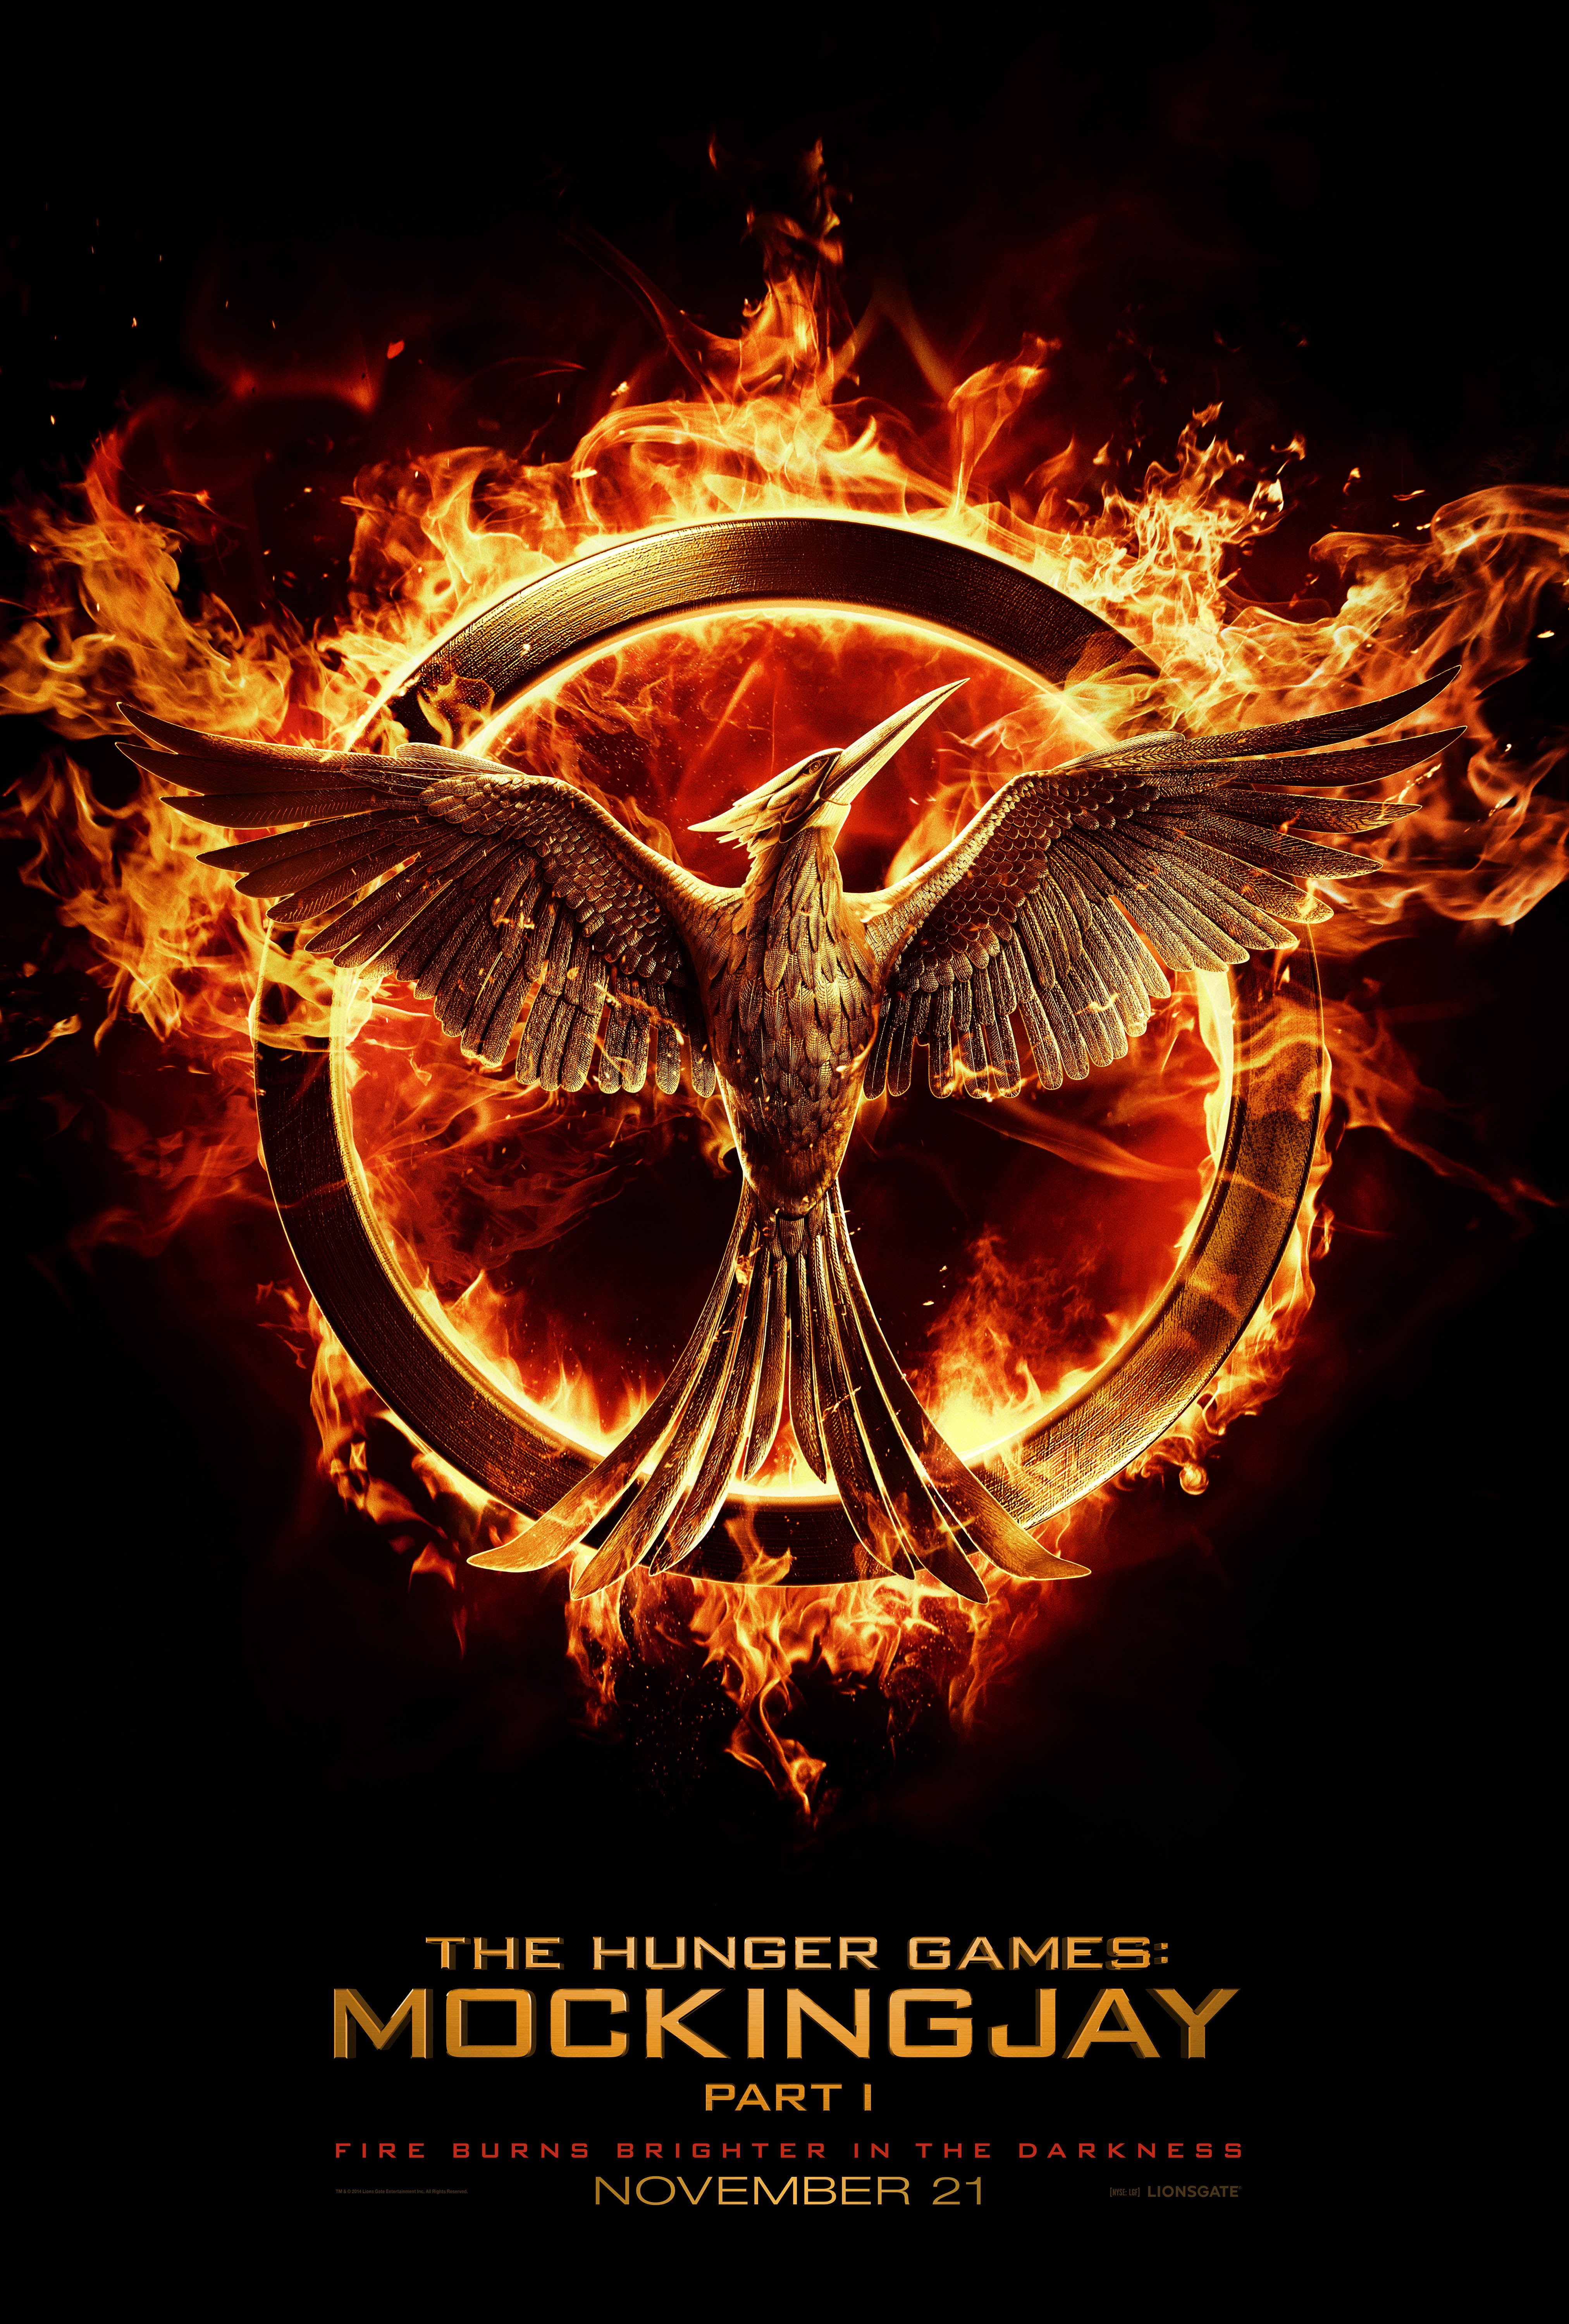 Trailer: Official THE HUNGER GAMES: MOCKINGJAY – PART 1 Worldwide Trailer